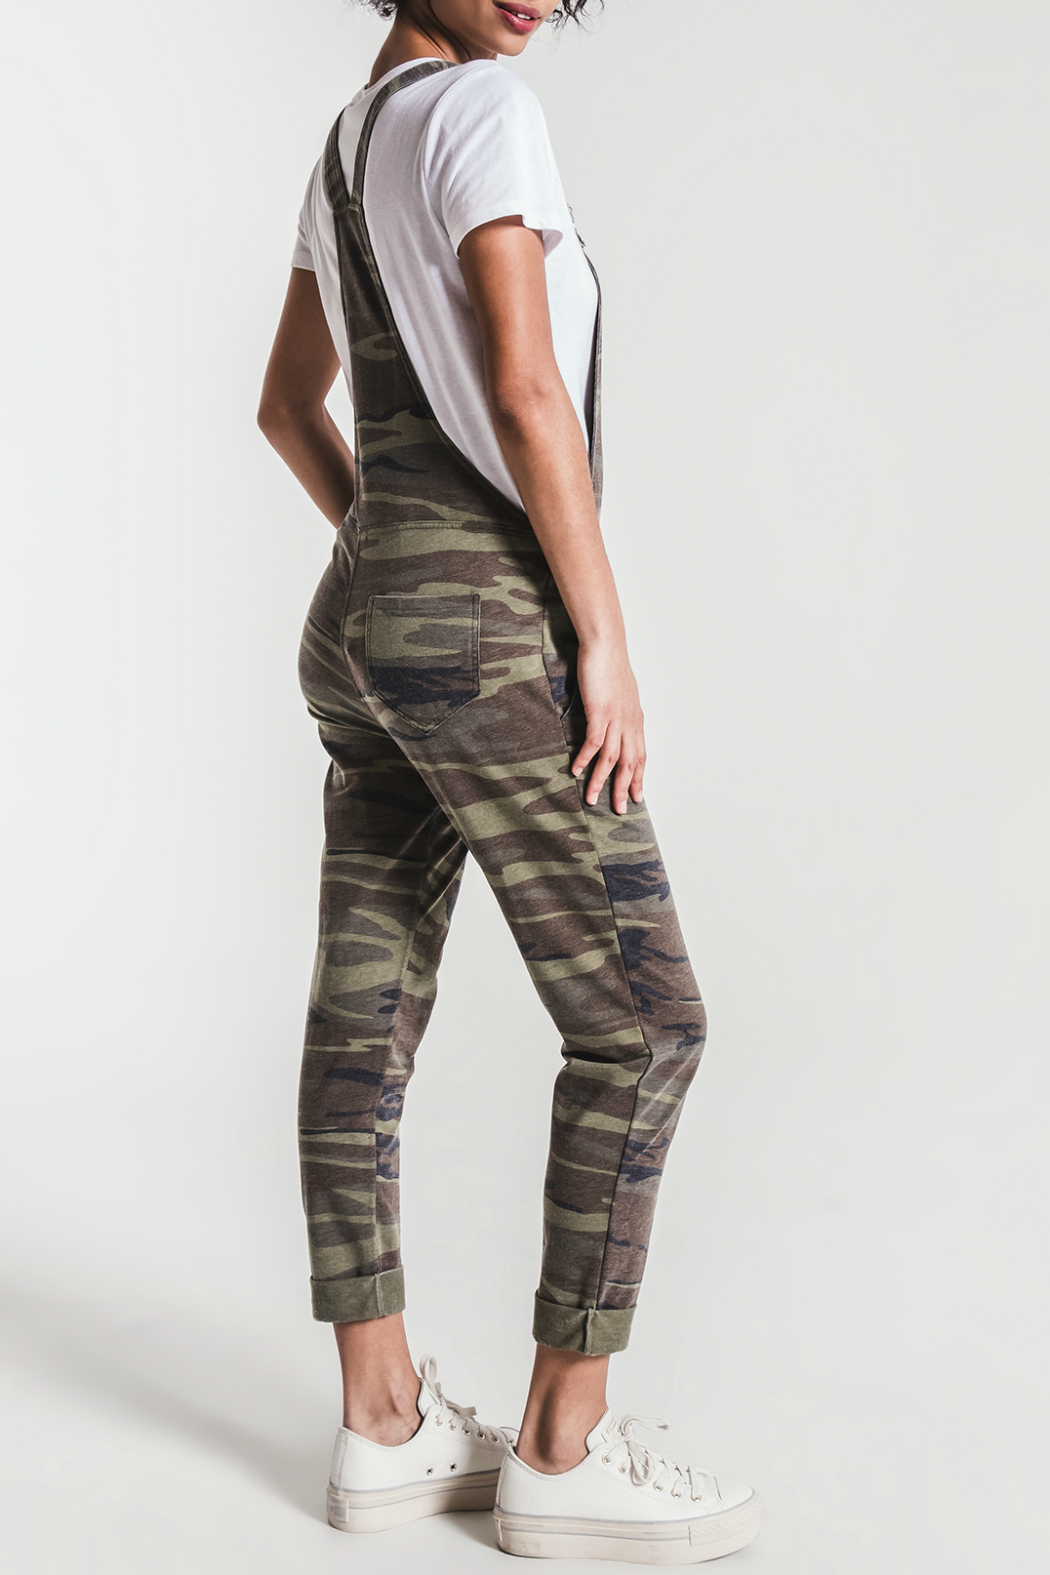 z supply Camo Overalls - Side Cropped Image